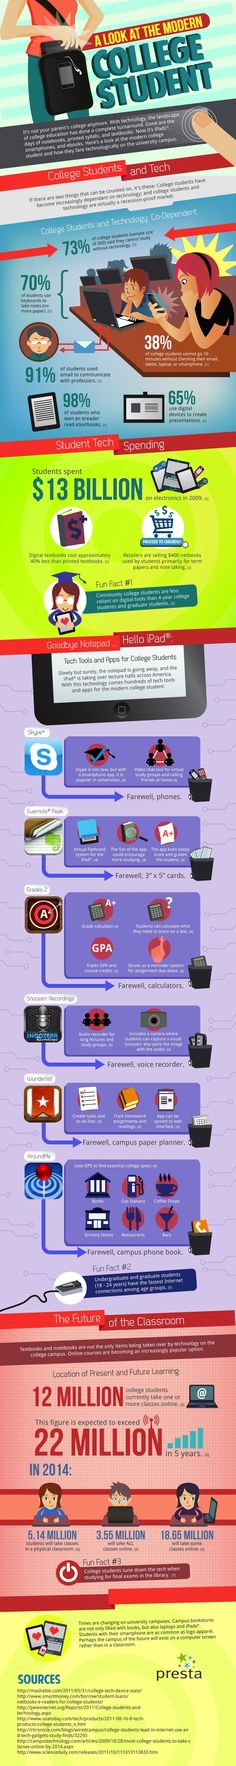 How Tech Is Changing College Life [INFOGRAPHIC] #FlowConnection